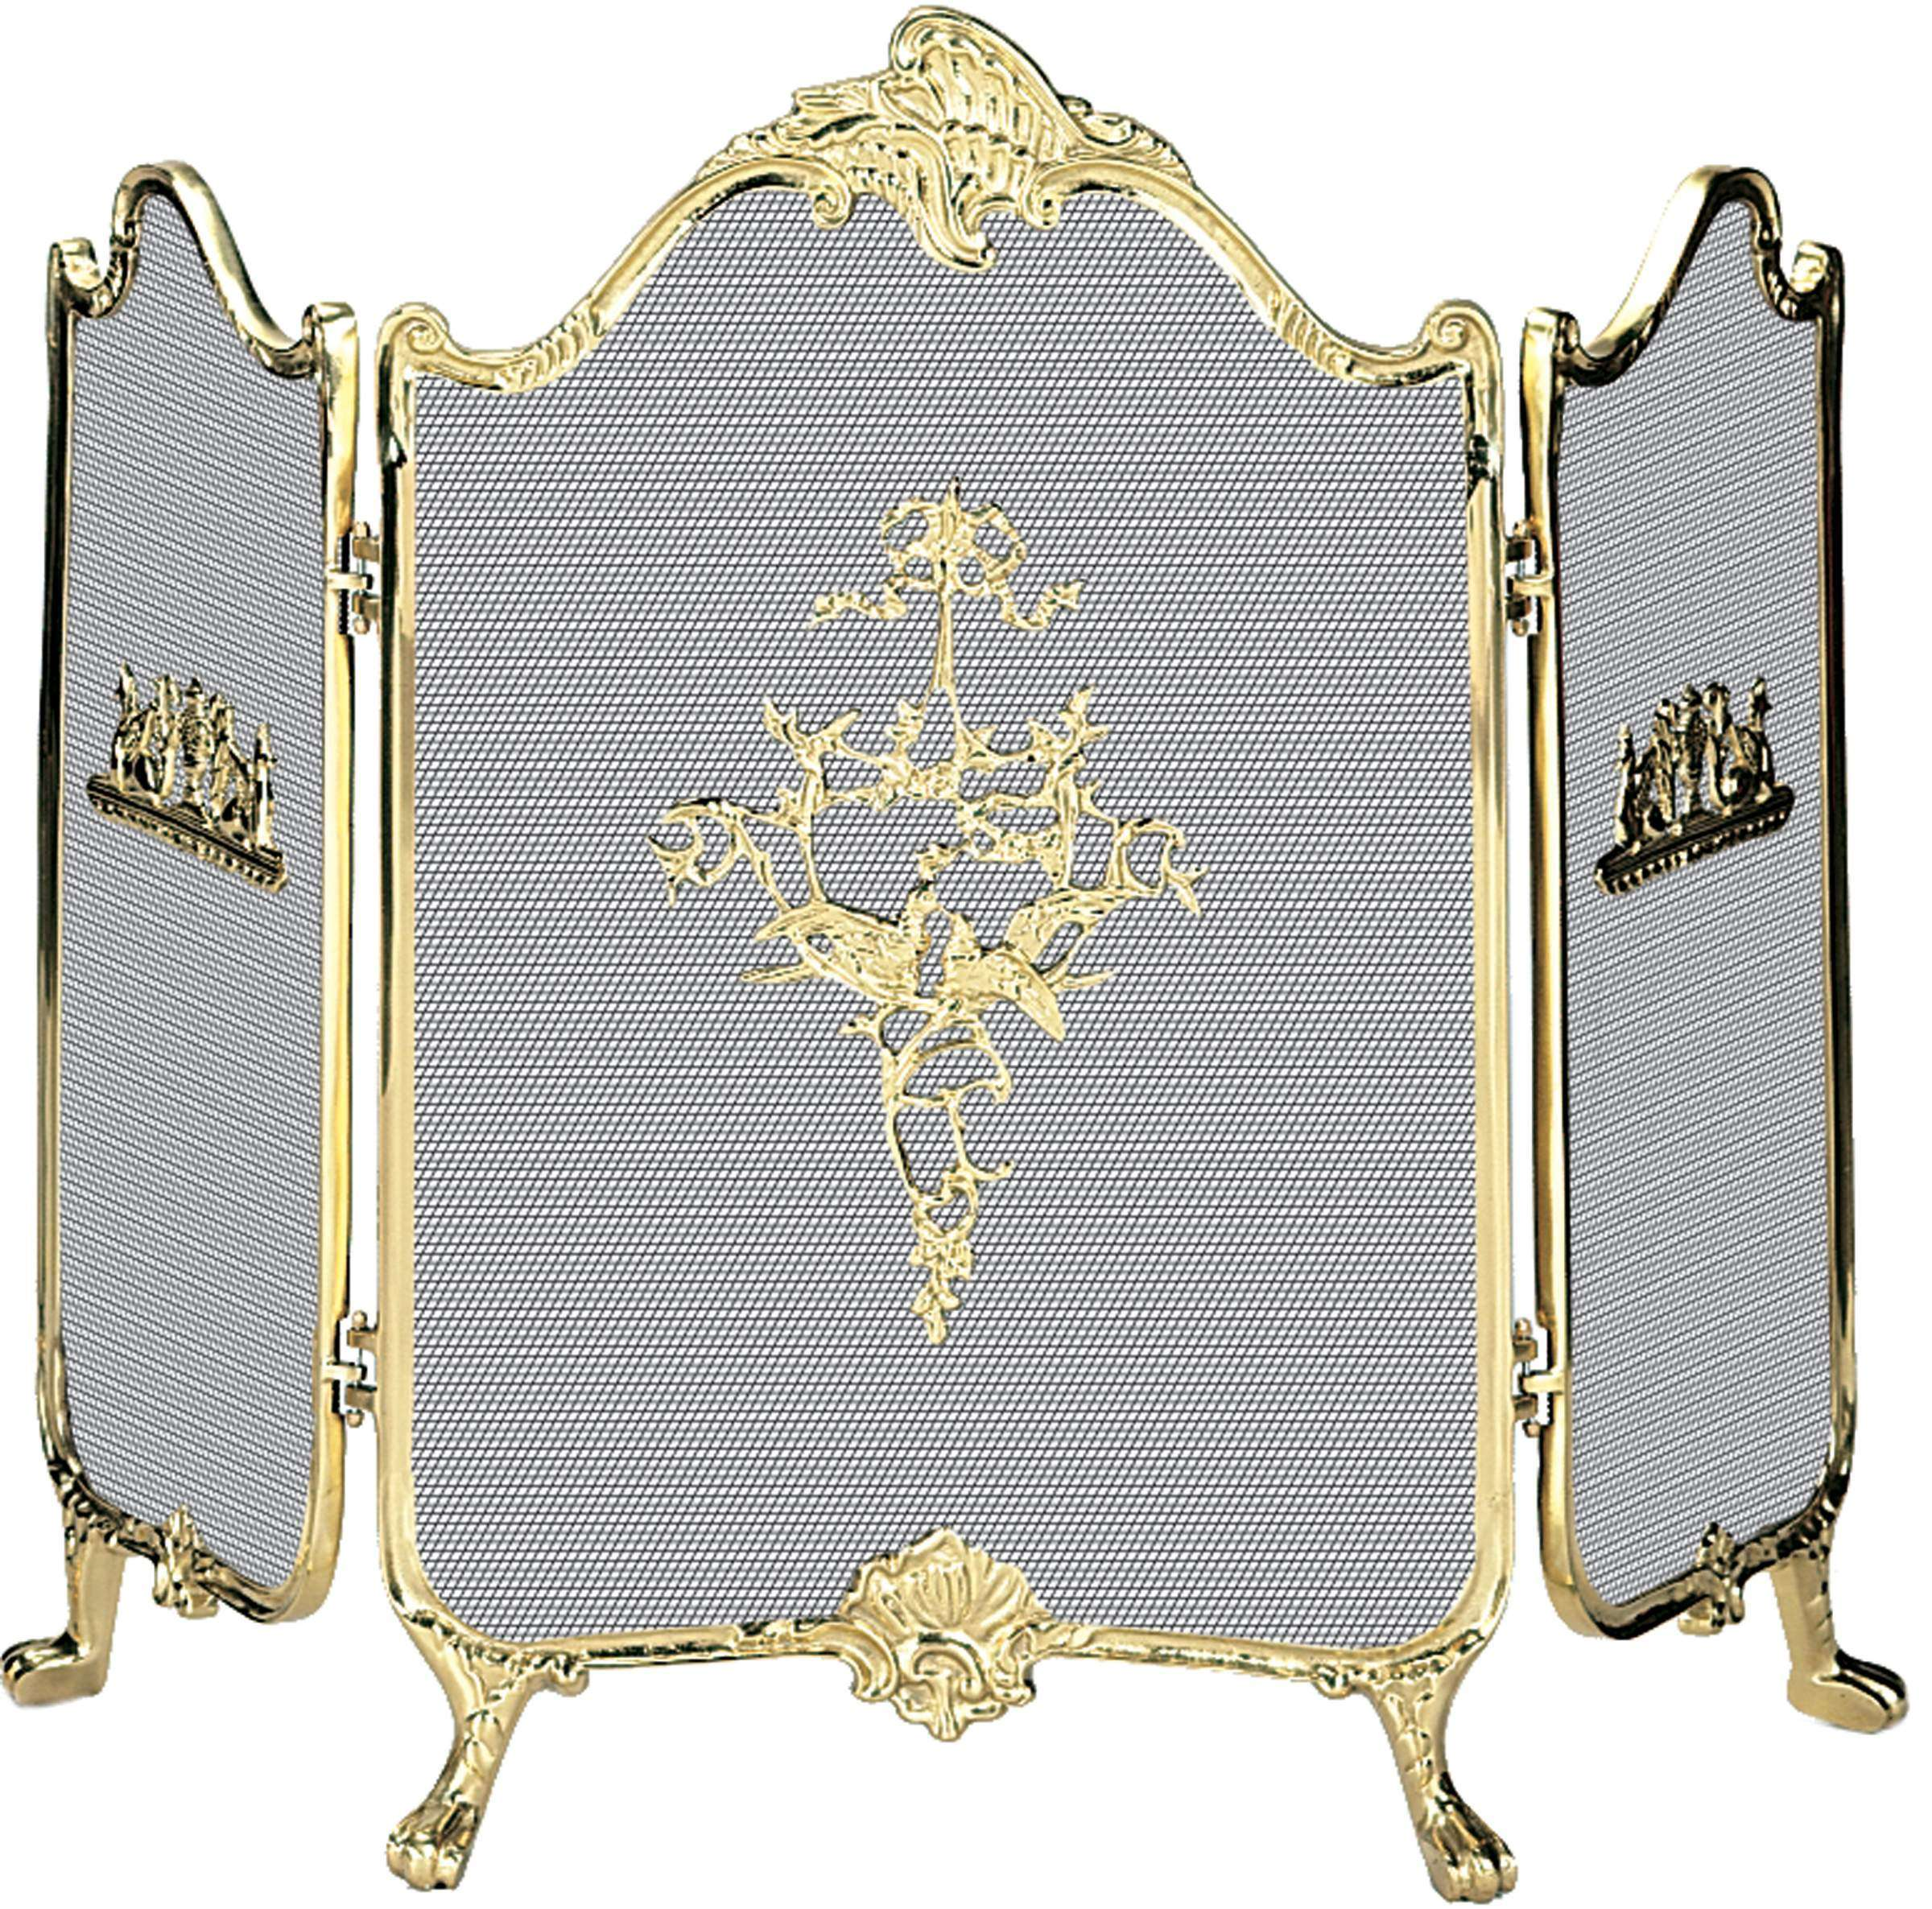 "3 Fold Ornate Fully Cast Solid Brass Screen - 41"" Wide x 31"" Tall"